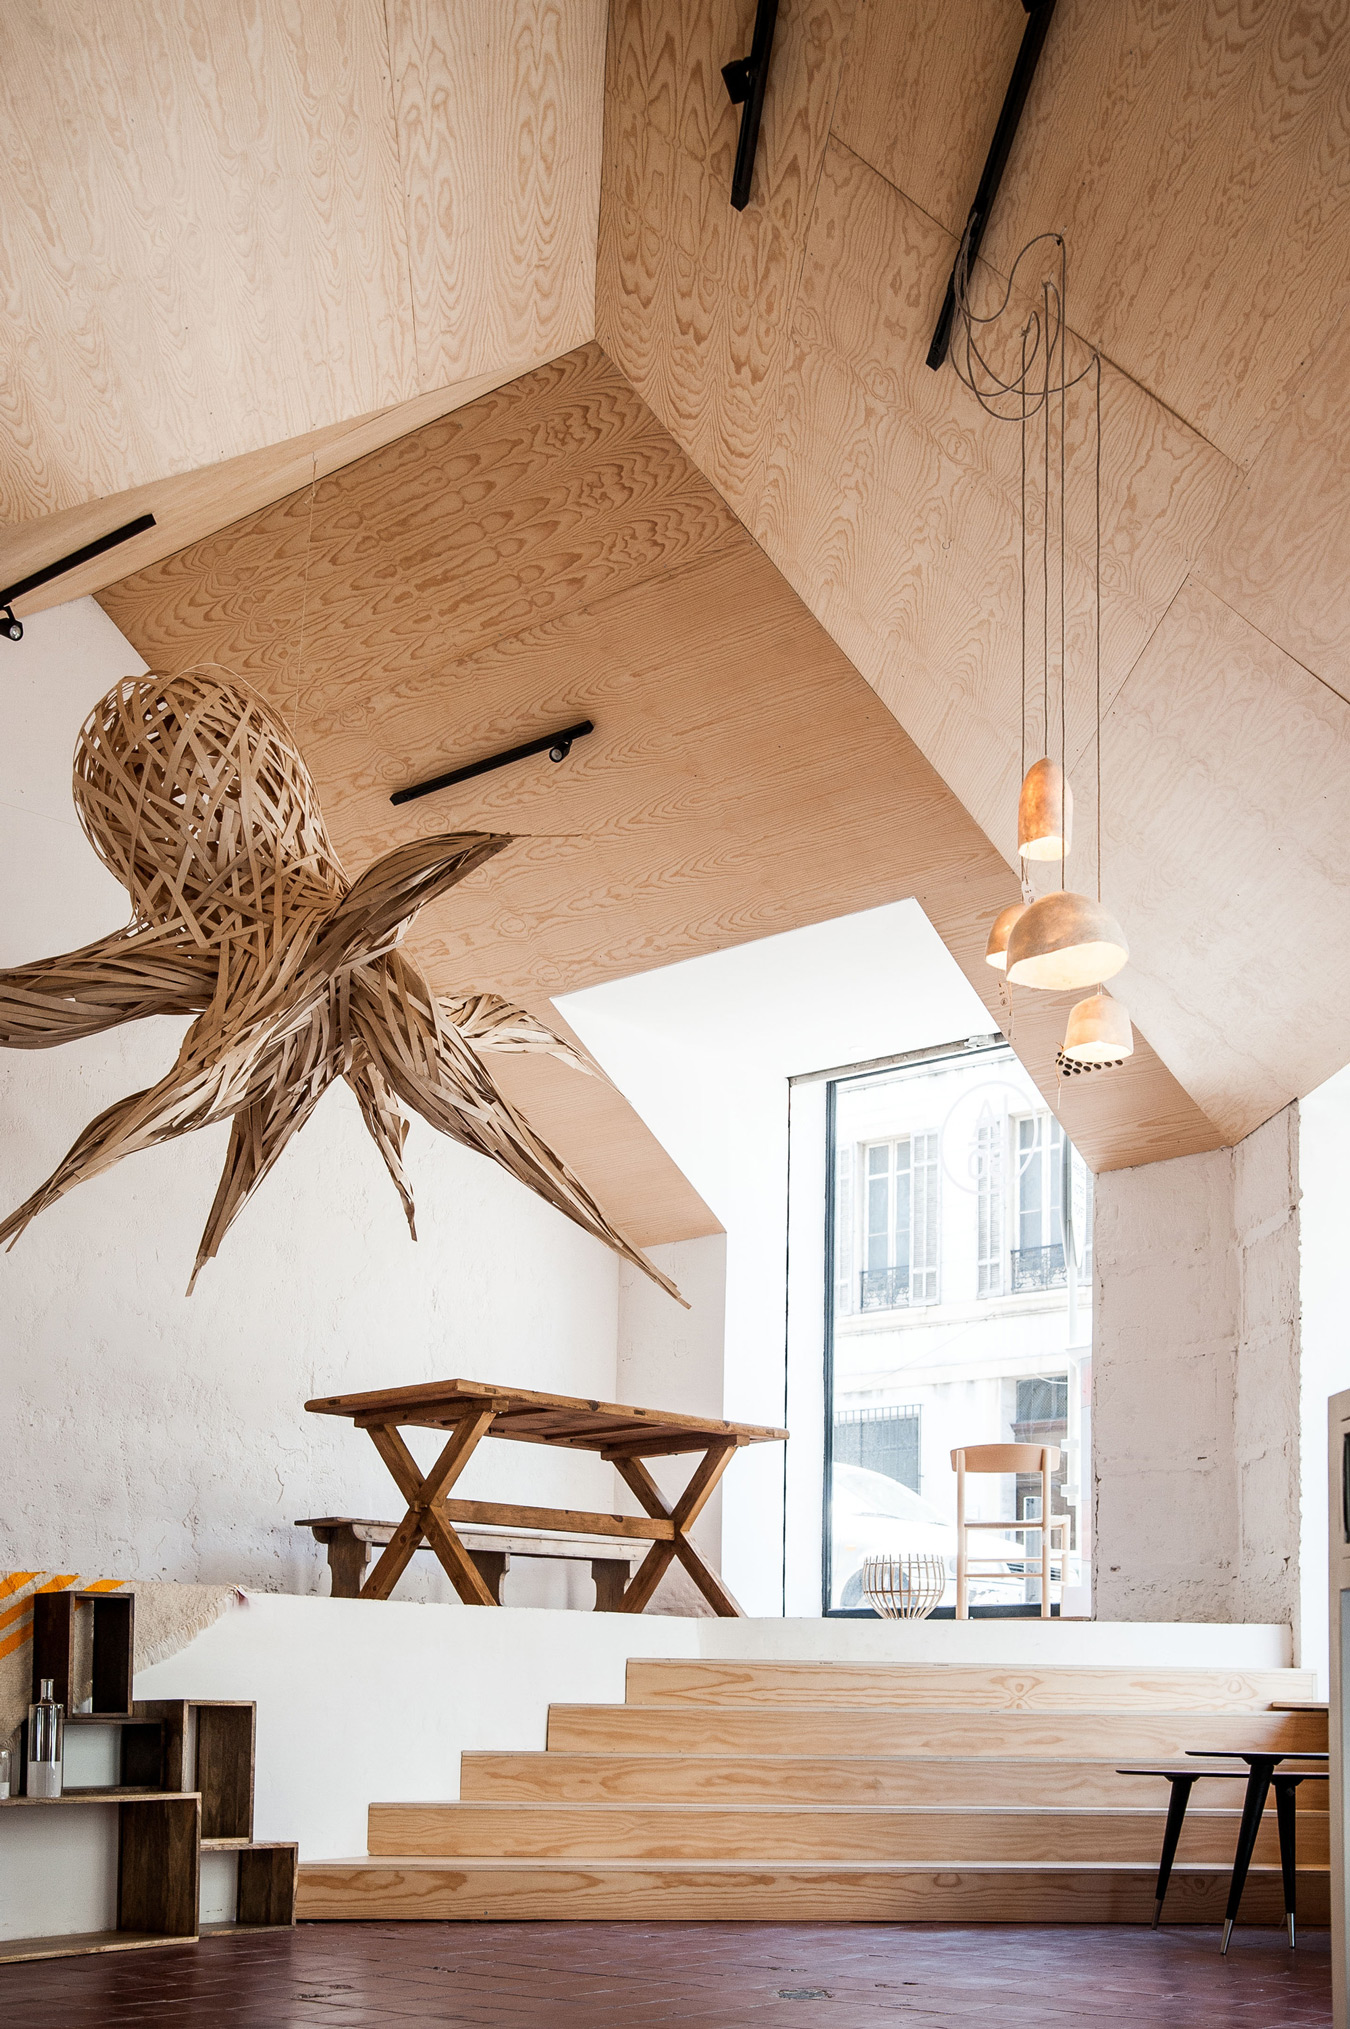 Shop and Exhibition Space in Marseille / Atelier M3a Architectes (7)